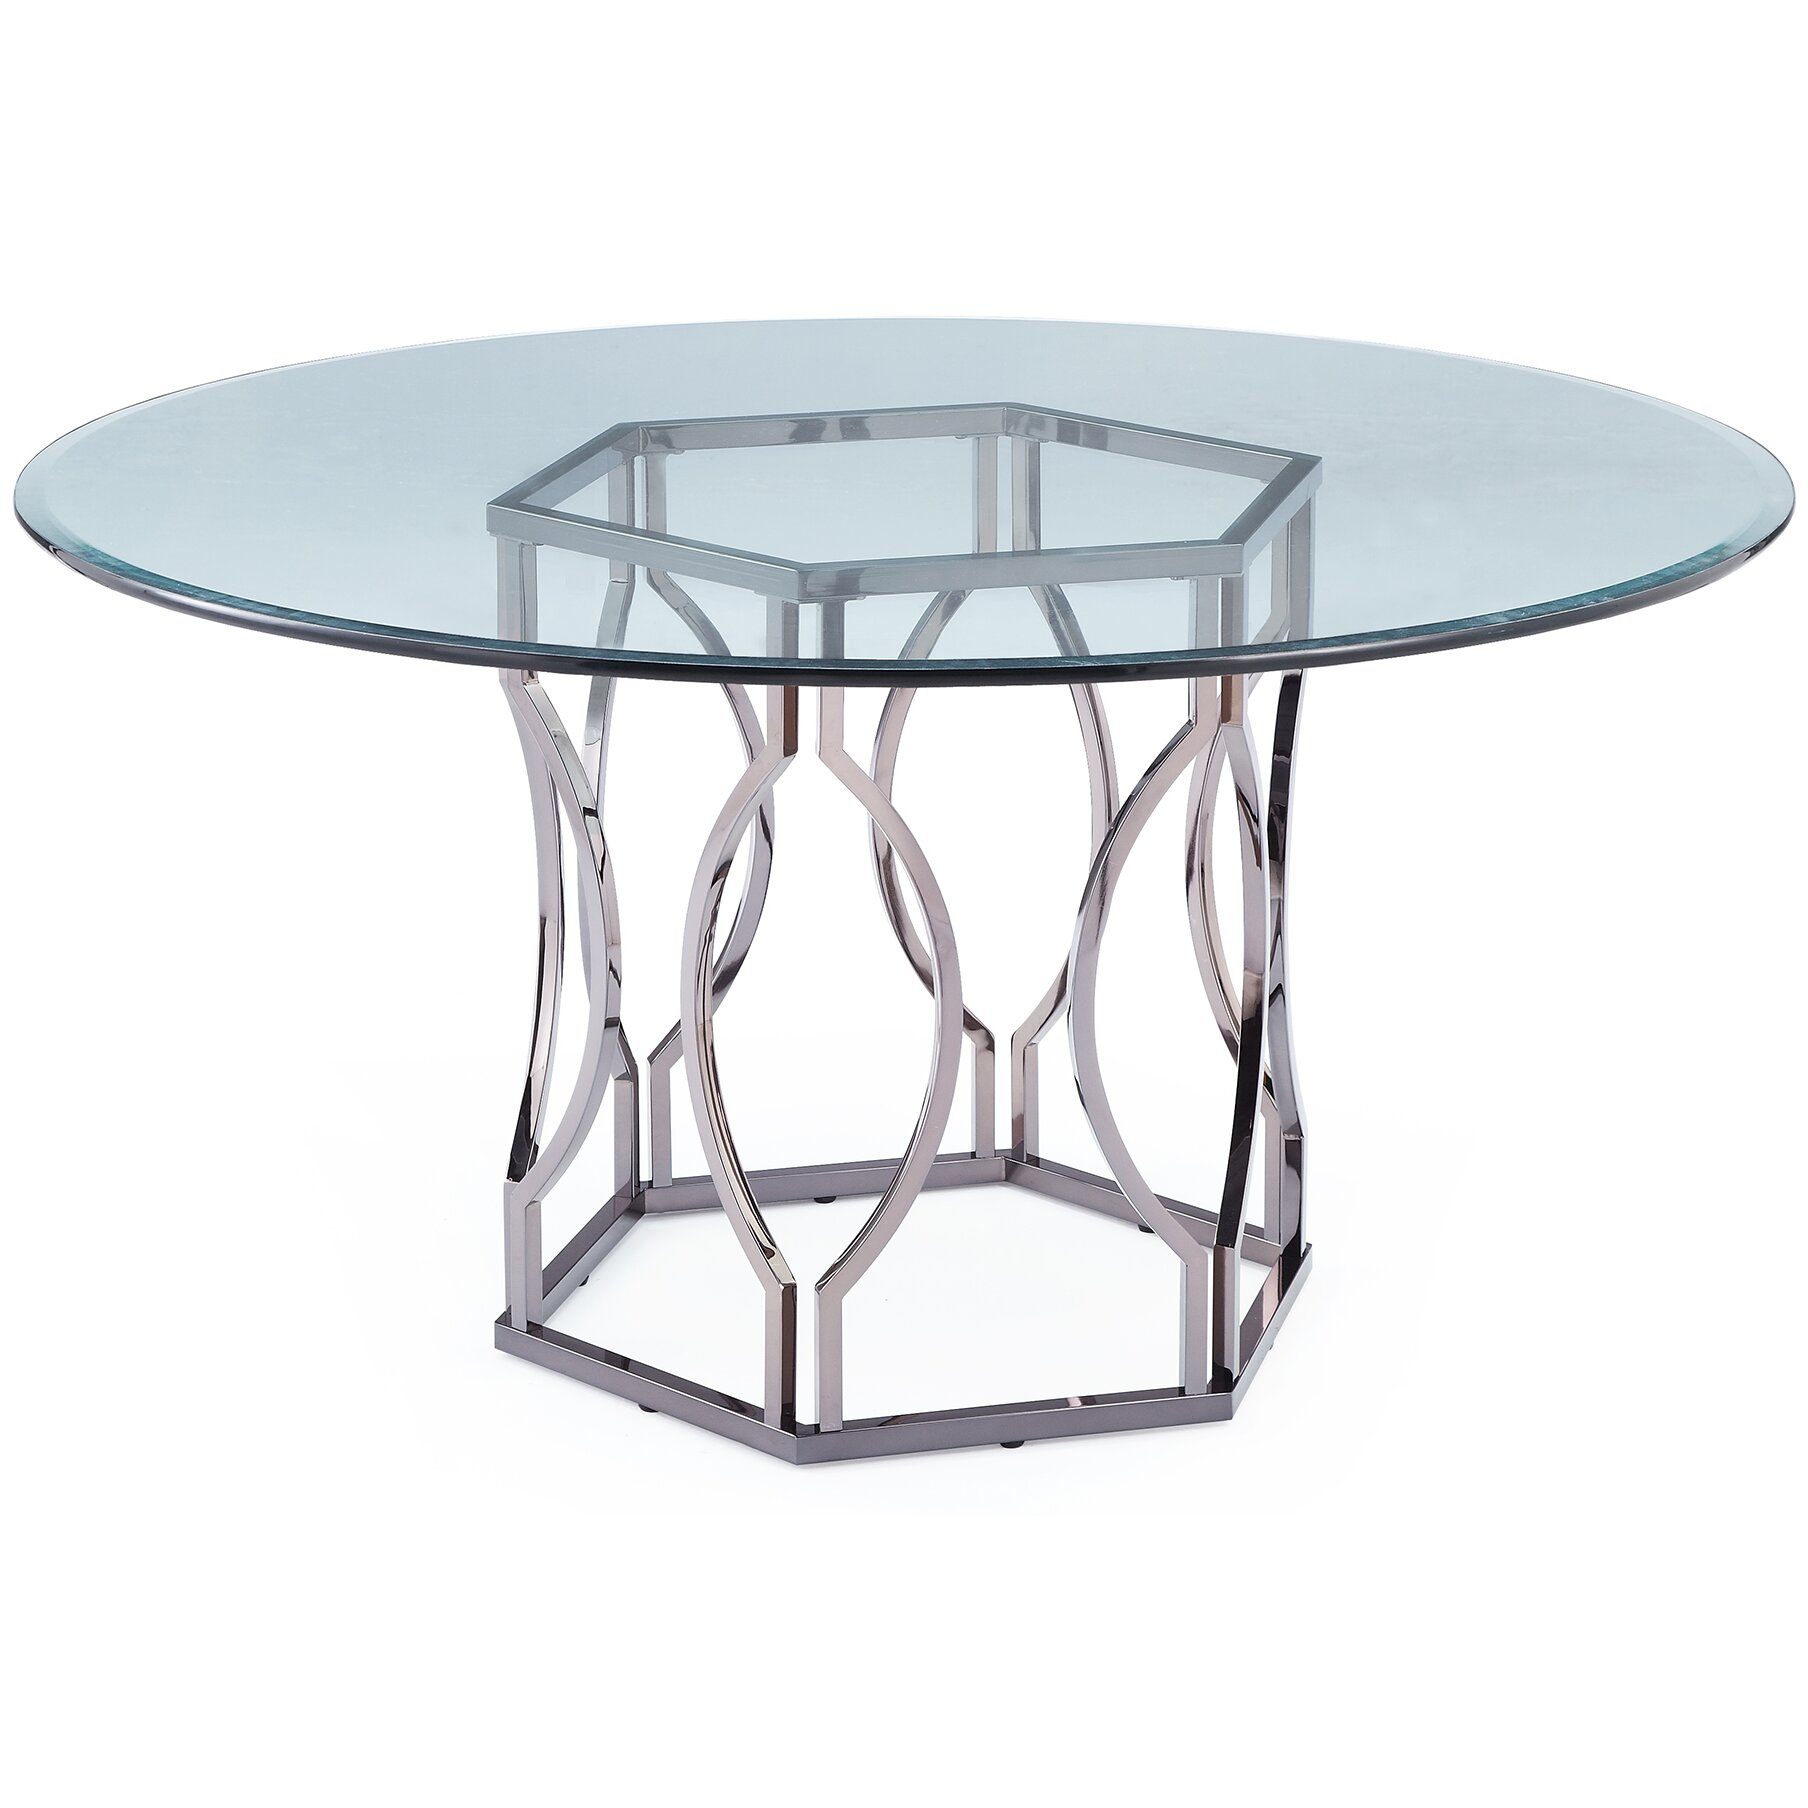 Round Glass Dining Room Table: Mercer41™ Viggo Round Glass Dining Table & Reviews